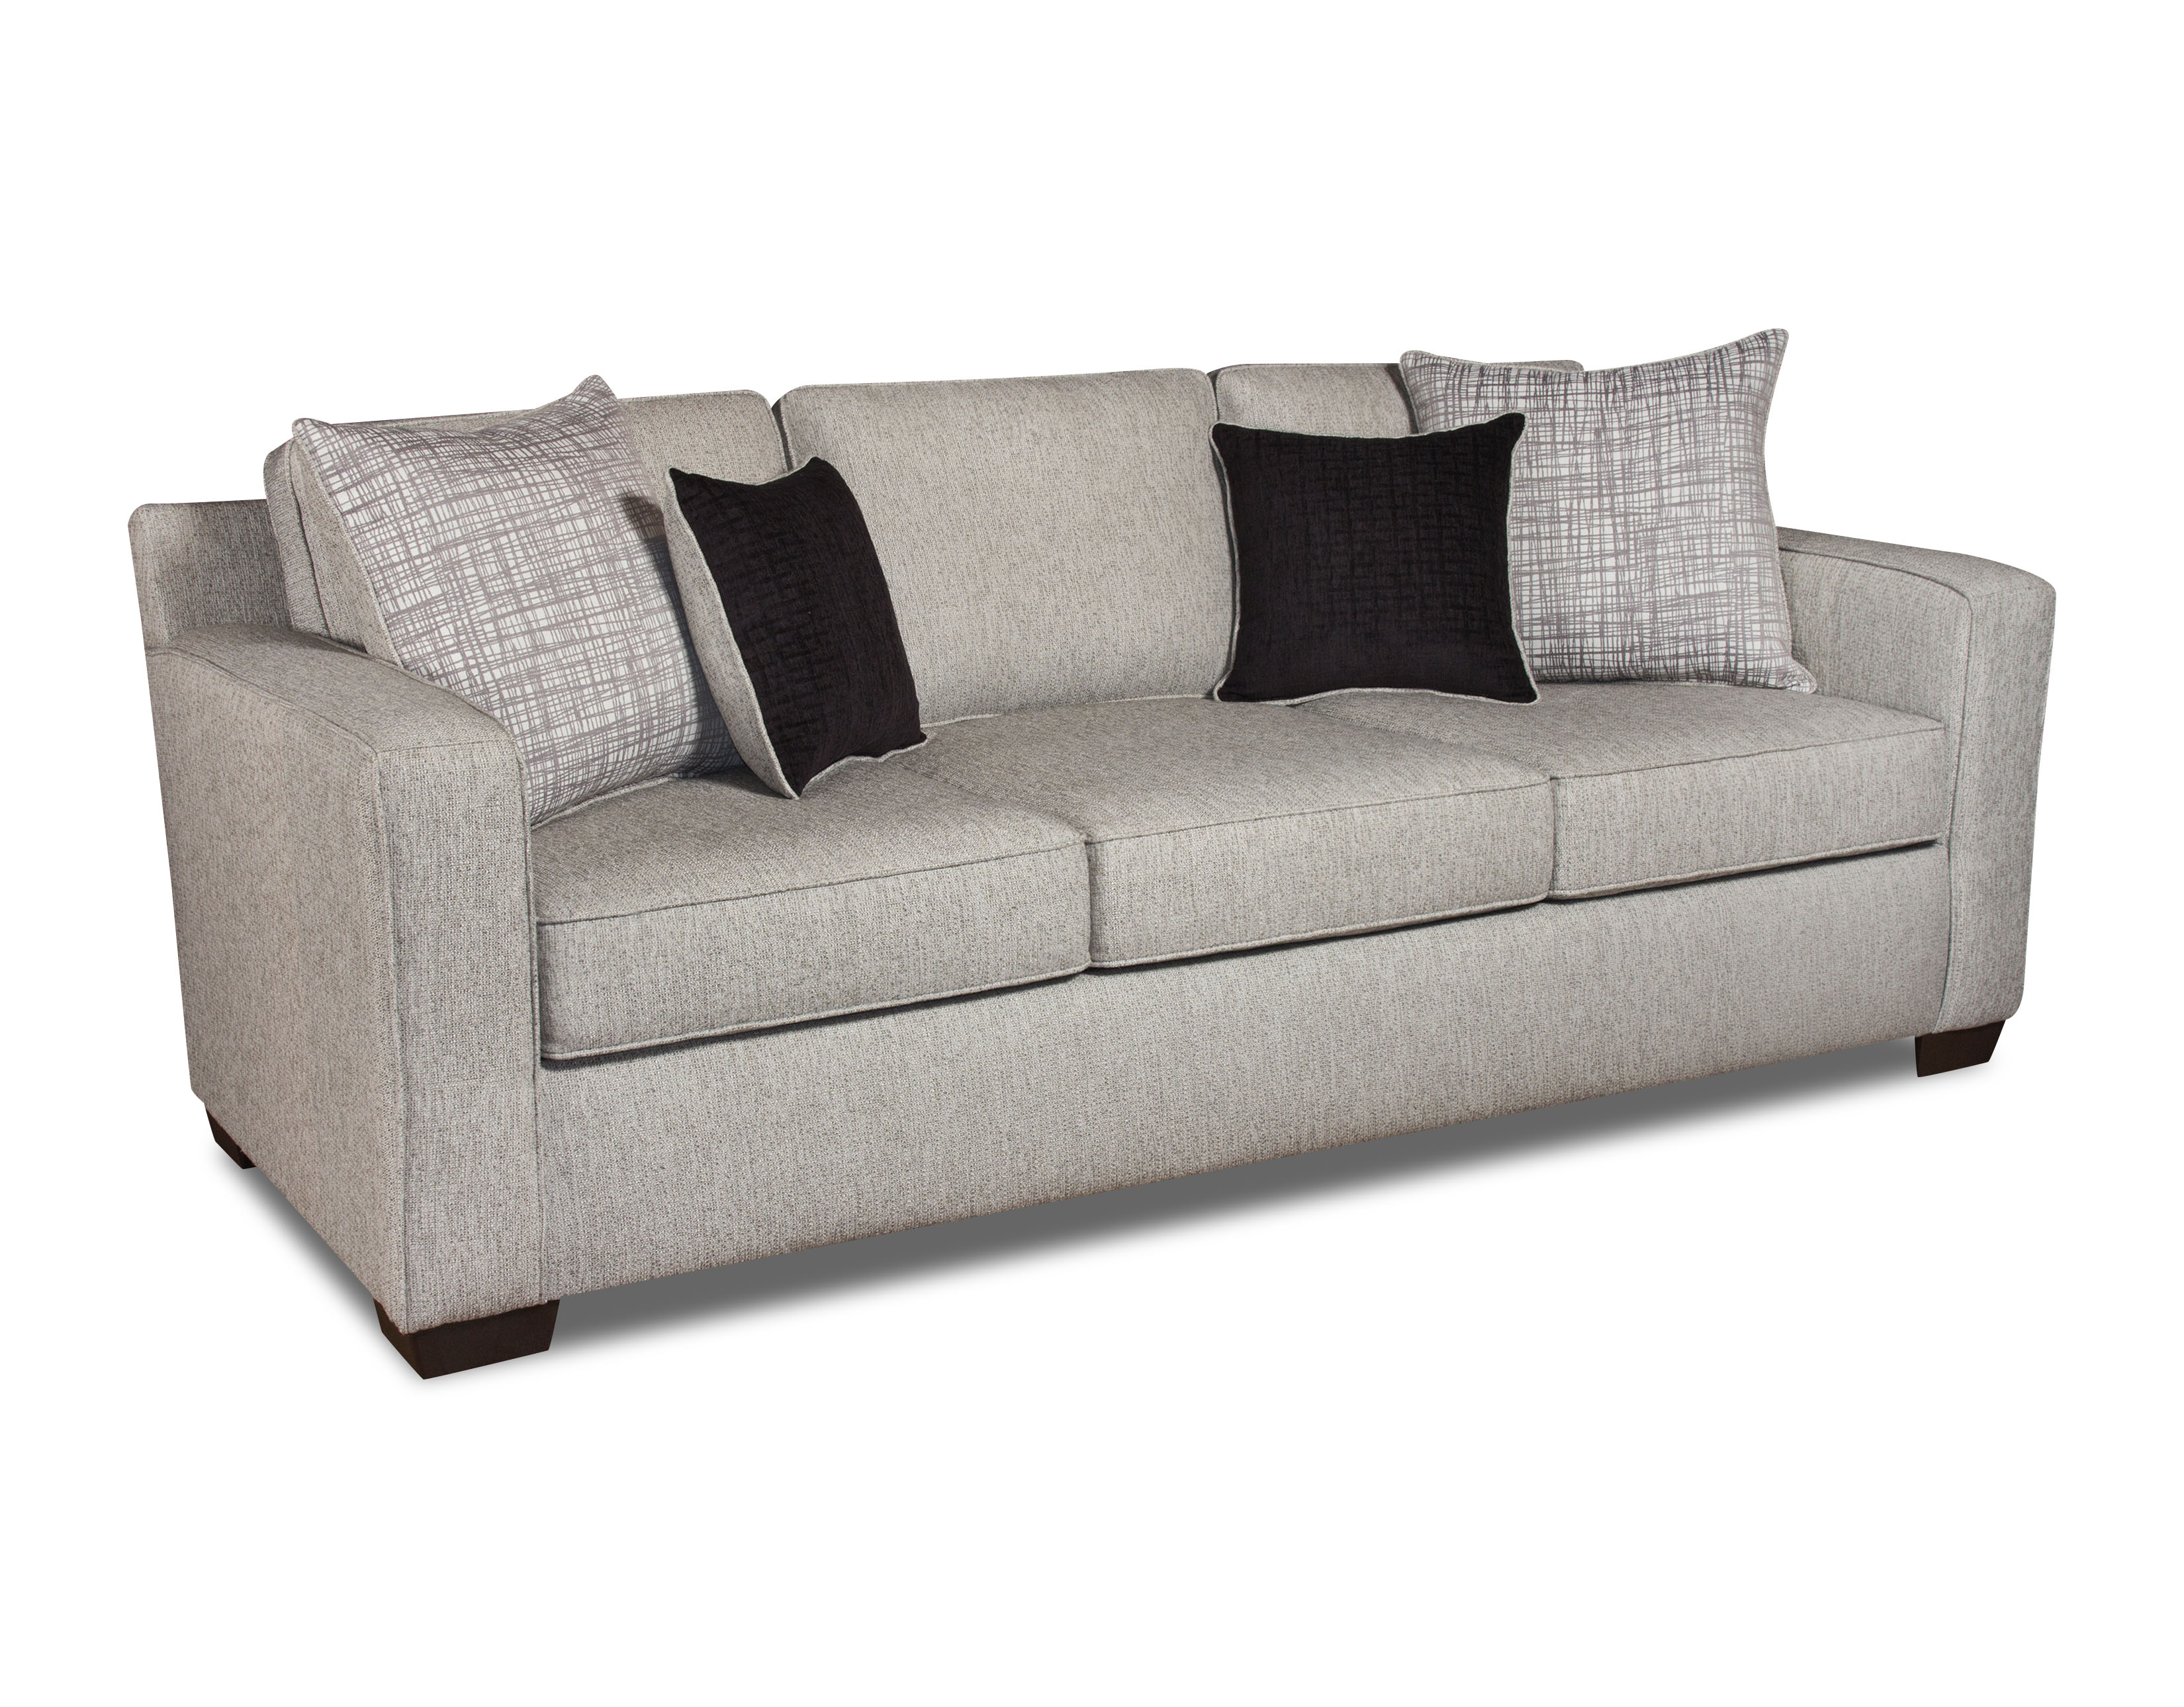 Furniture Manufacturers Ontario Upholstered Sofa Manufacturers Upholstered Sofa Gaddi Wala